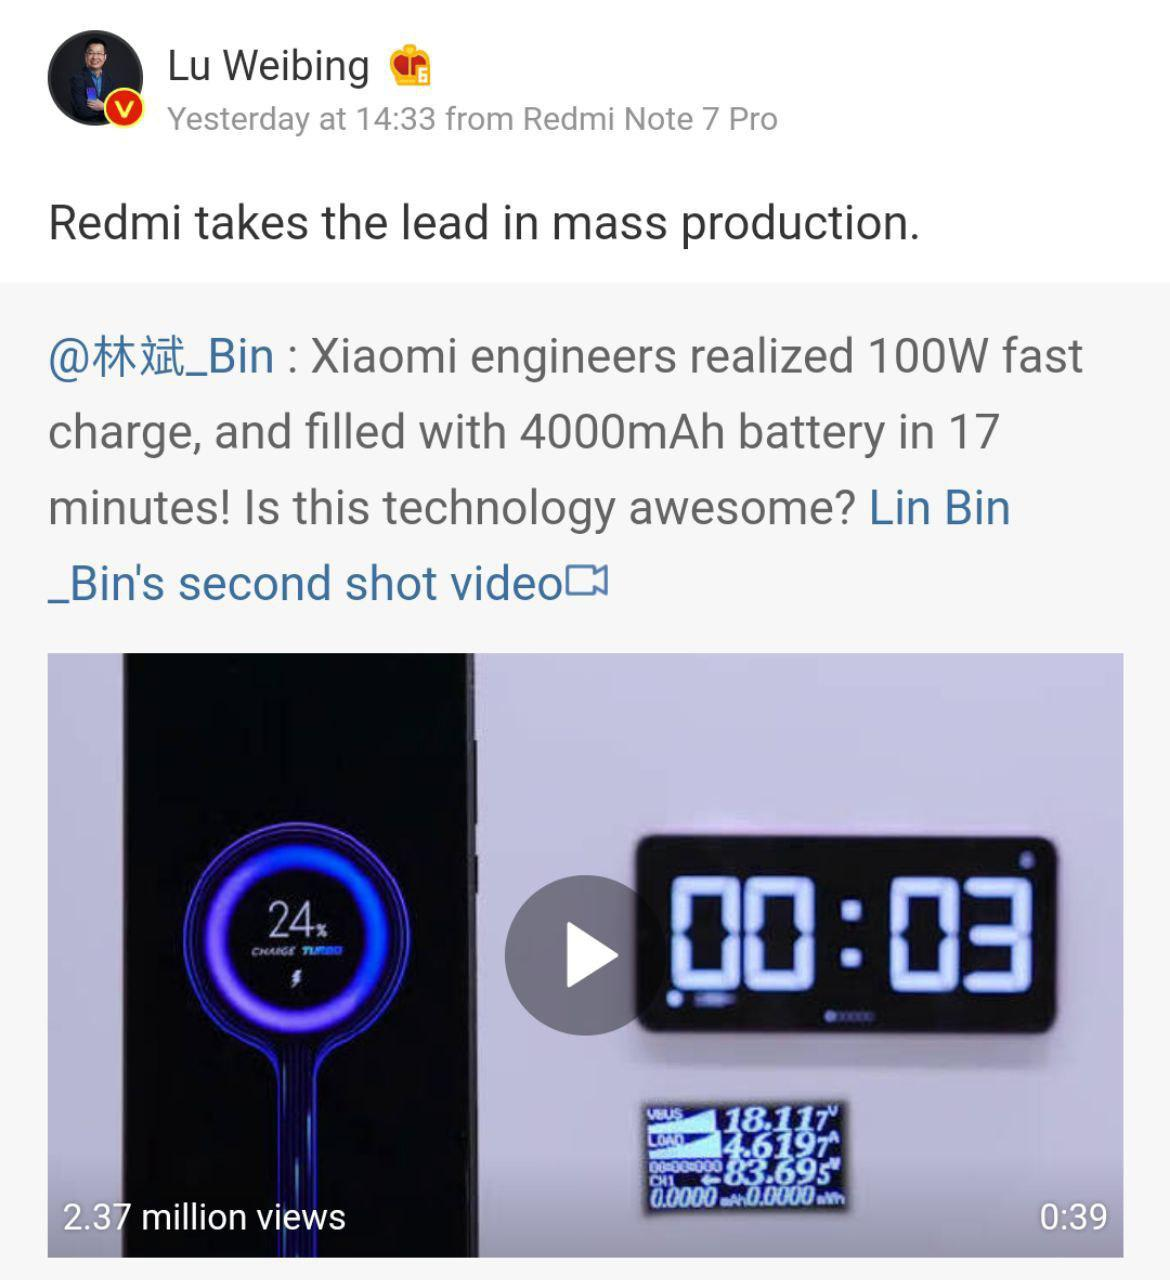 Xiaomi Super Charge Turbo carga rápida 100w 81w lin bin noticias